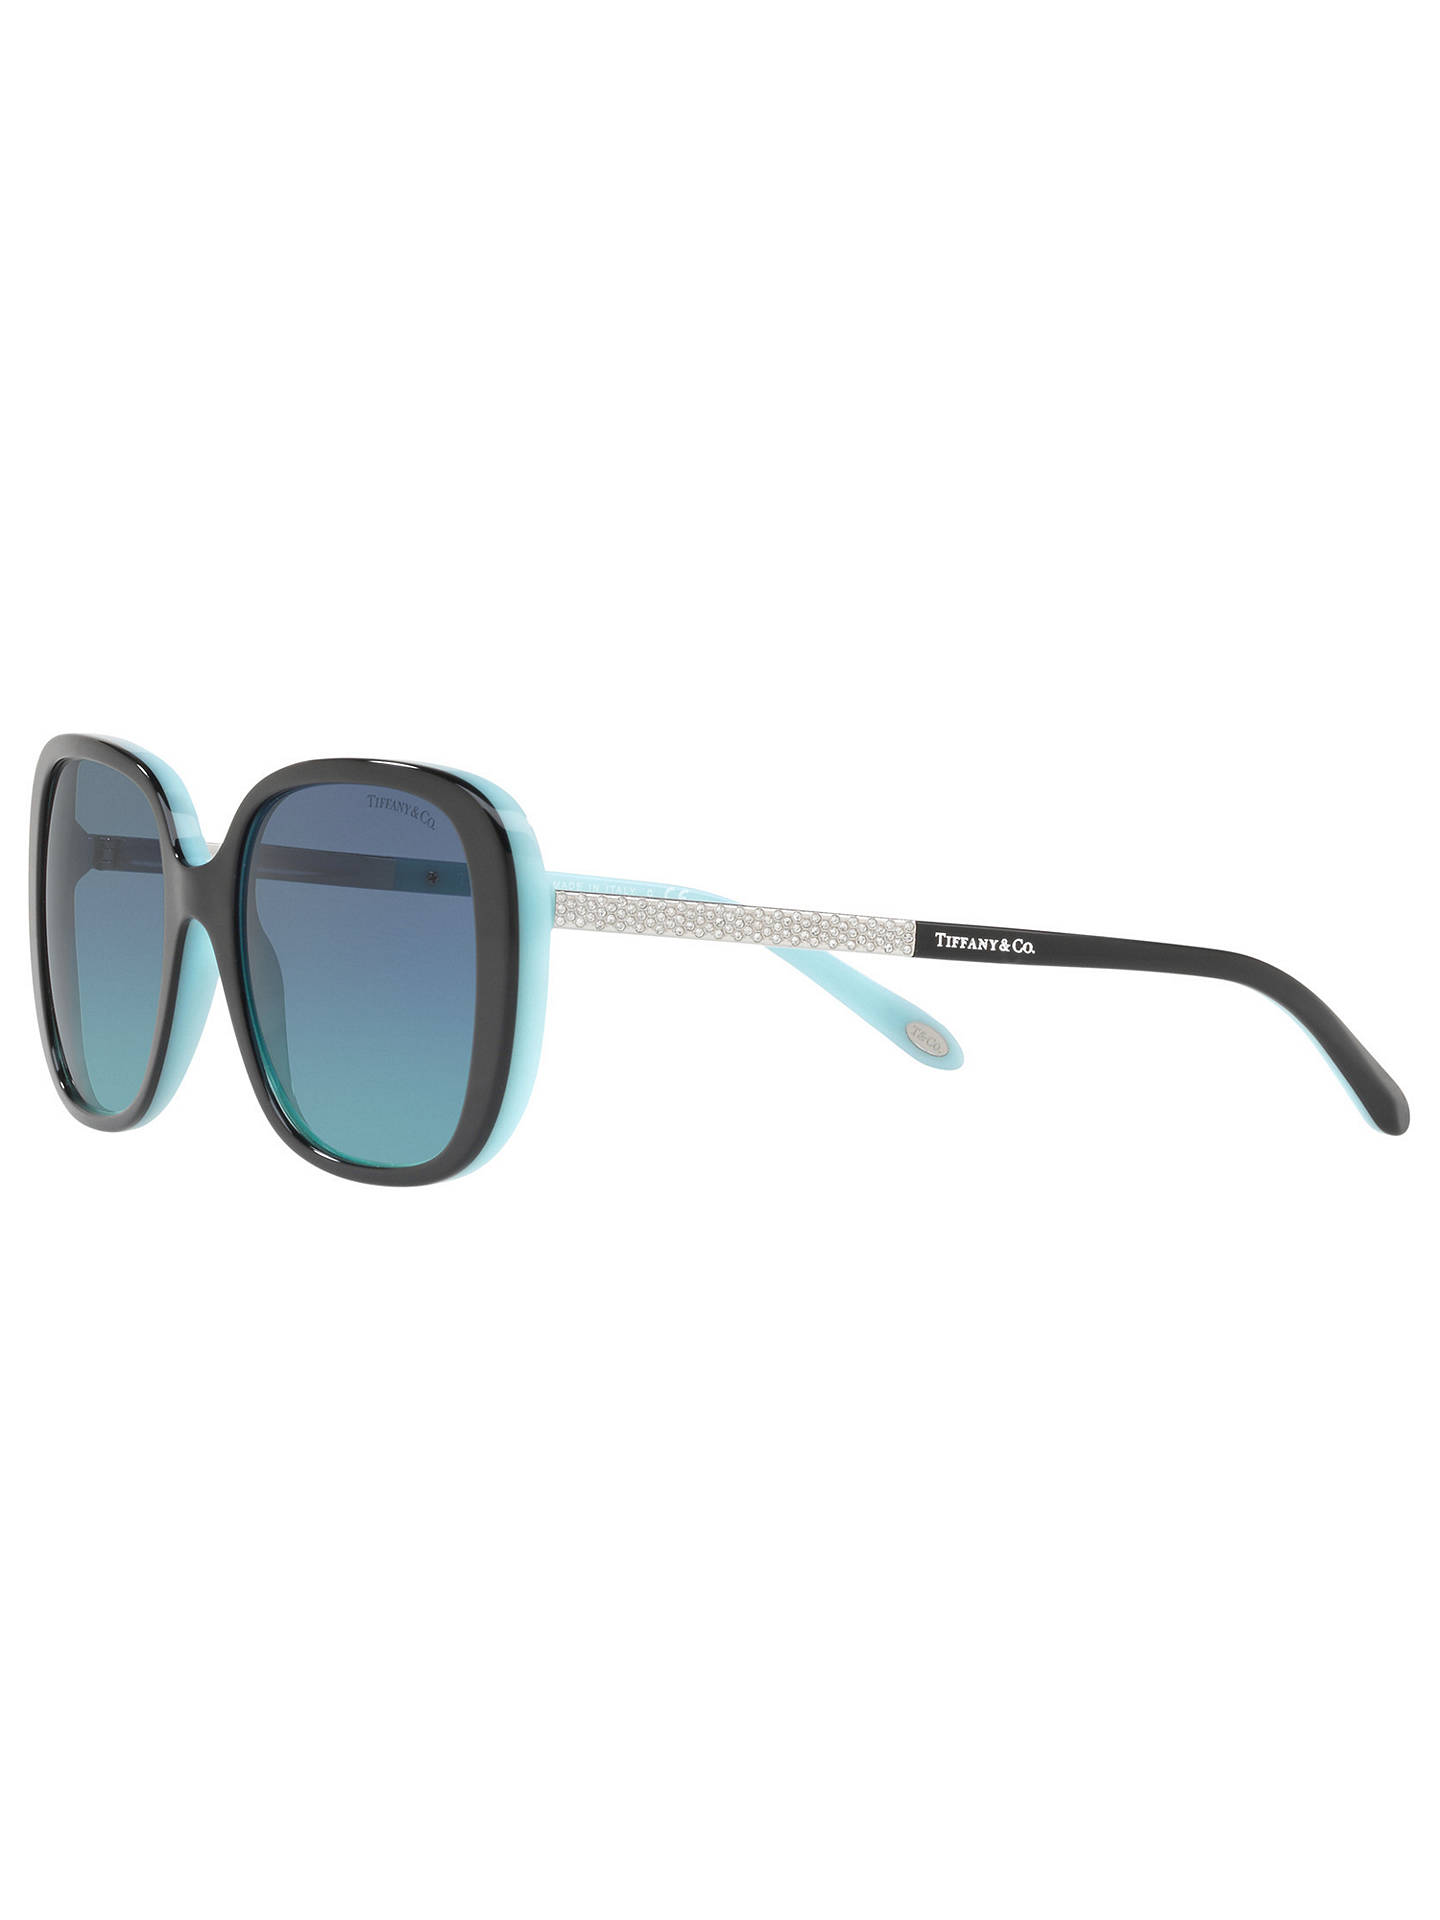 Buy Tiffany & Co TF4137B Square Sunglasses, Black/Blue Gradient Online at johnlewis.com